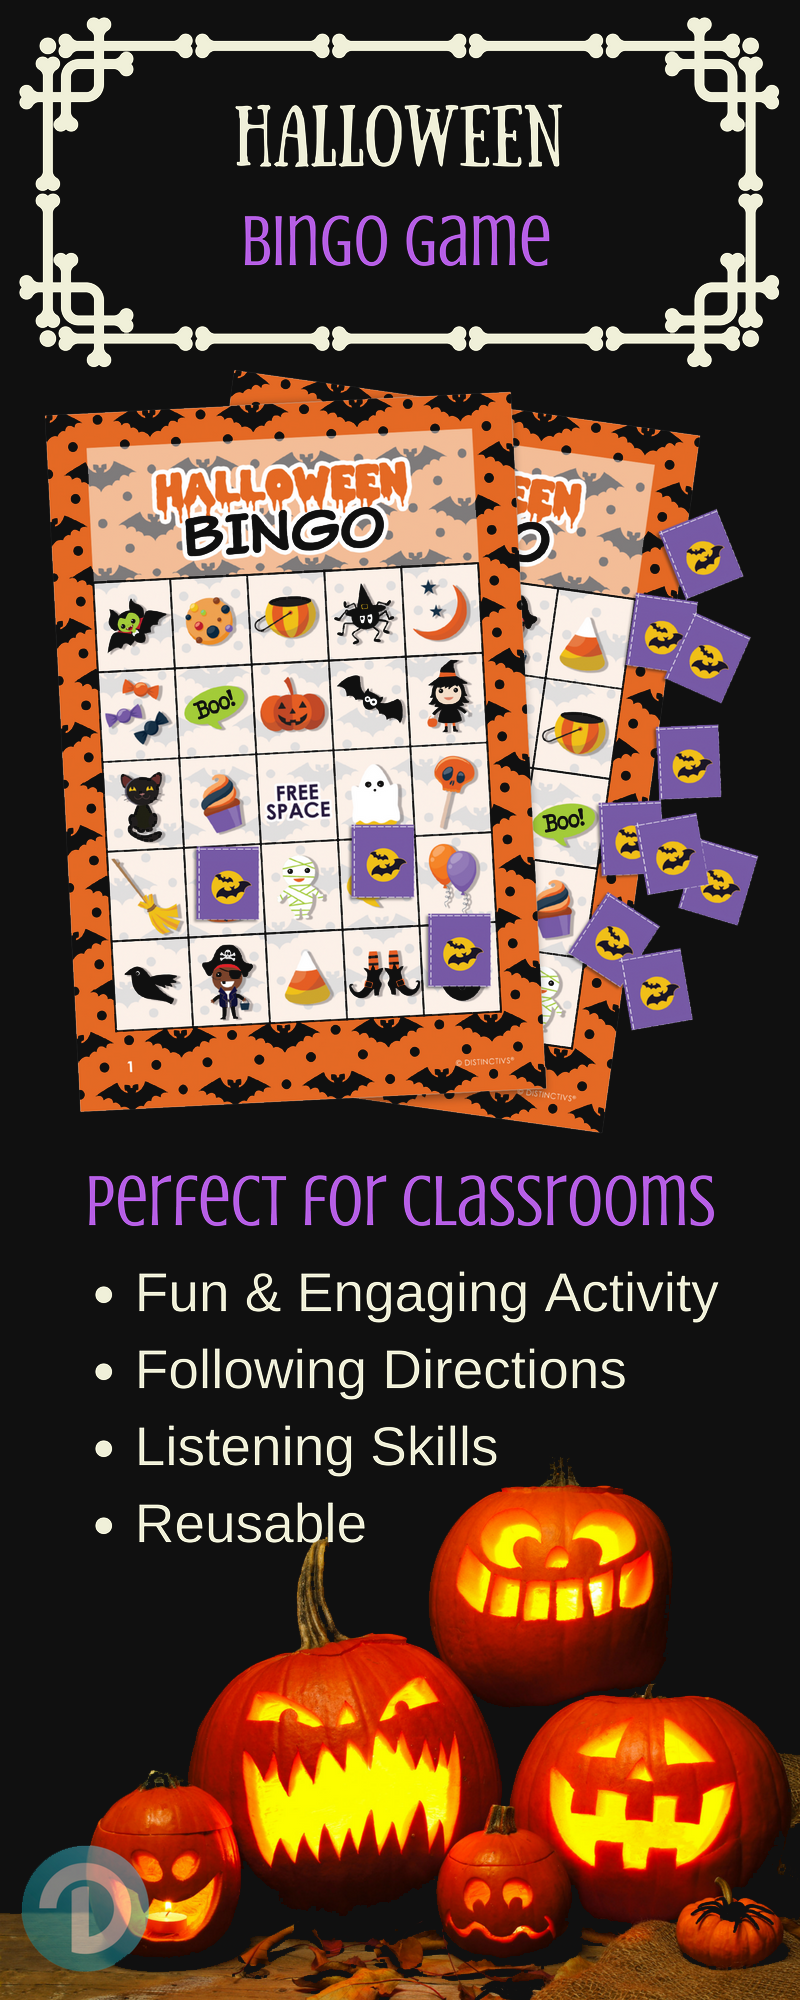 Halloween Bingo Game Set For Up To 24 Players Perfect Family Friendly Halloween Game For Children Halloween Bingo Halloween Party Kids Halloween Bingo Game